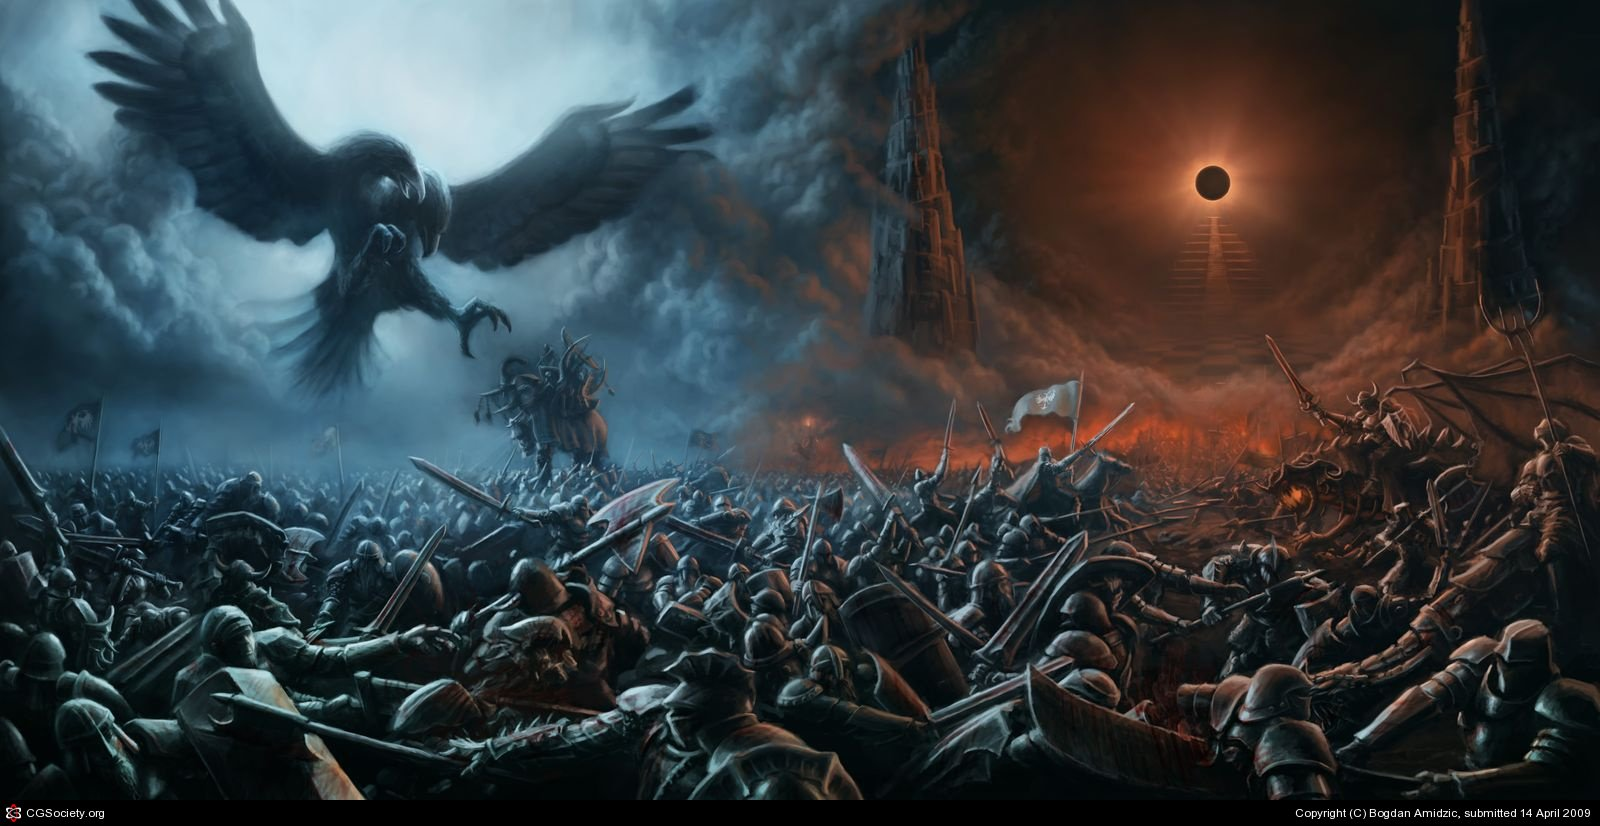 Epic Battle Background An epic battle scene thats 1600x826